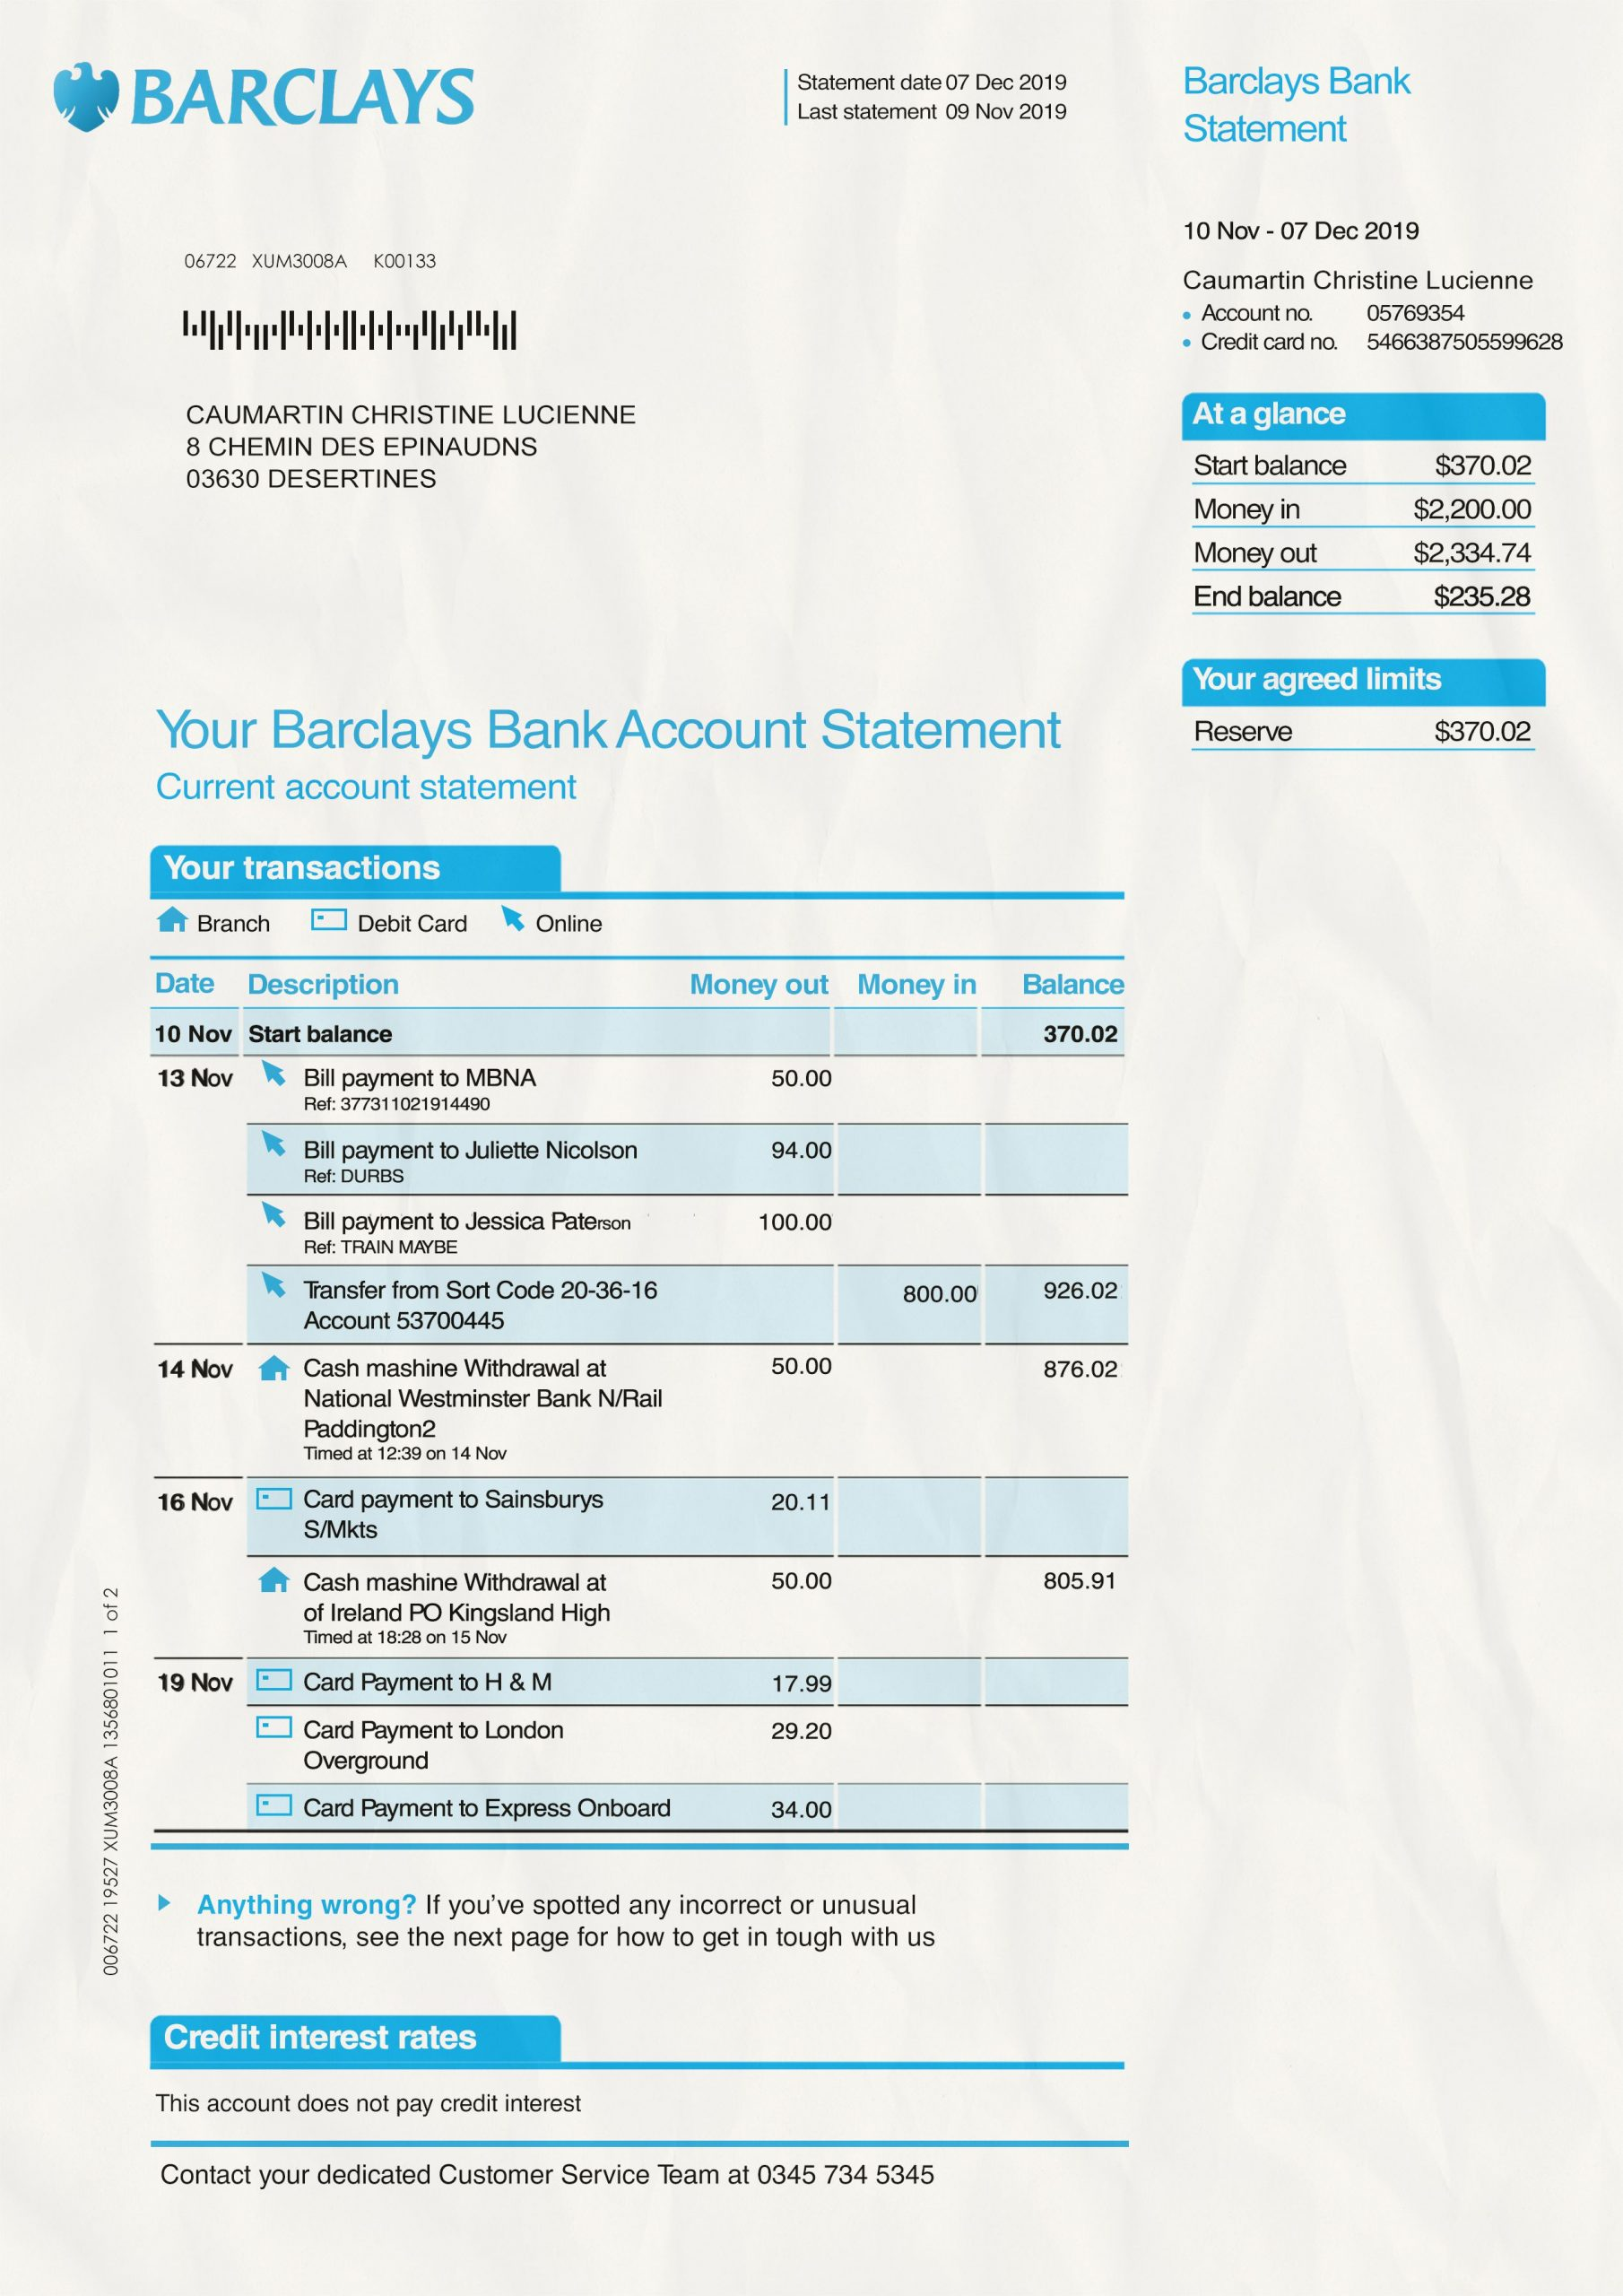 Barclays Bank Statement psd template